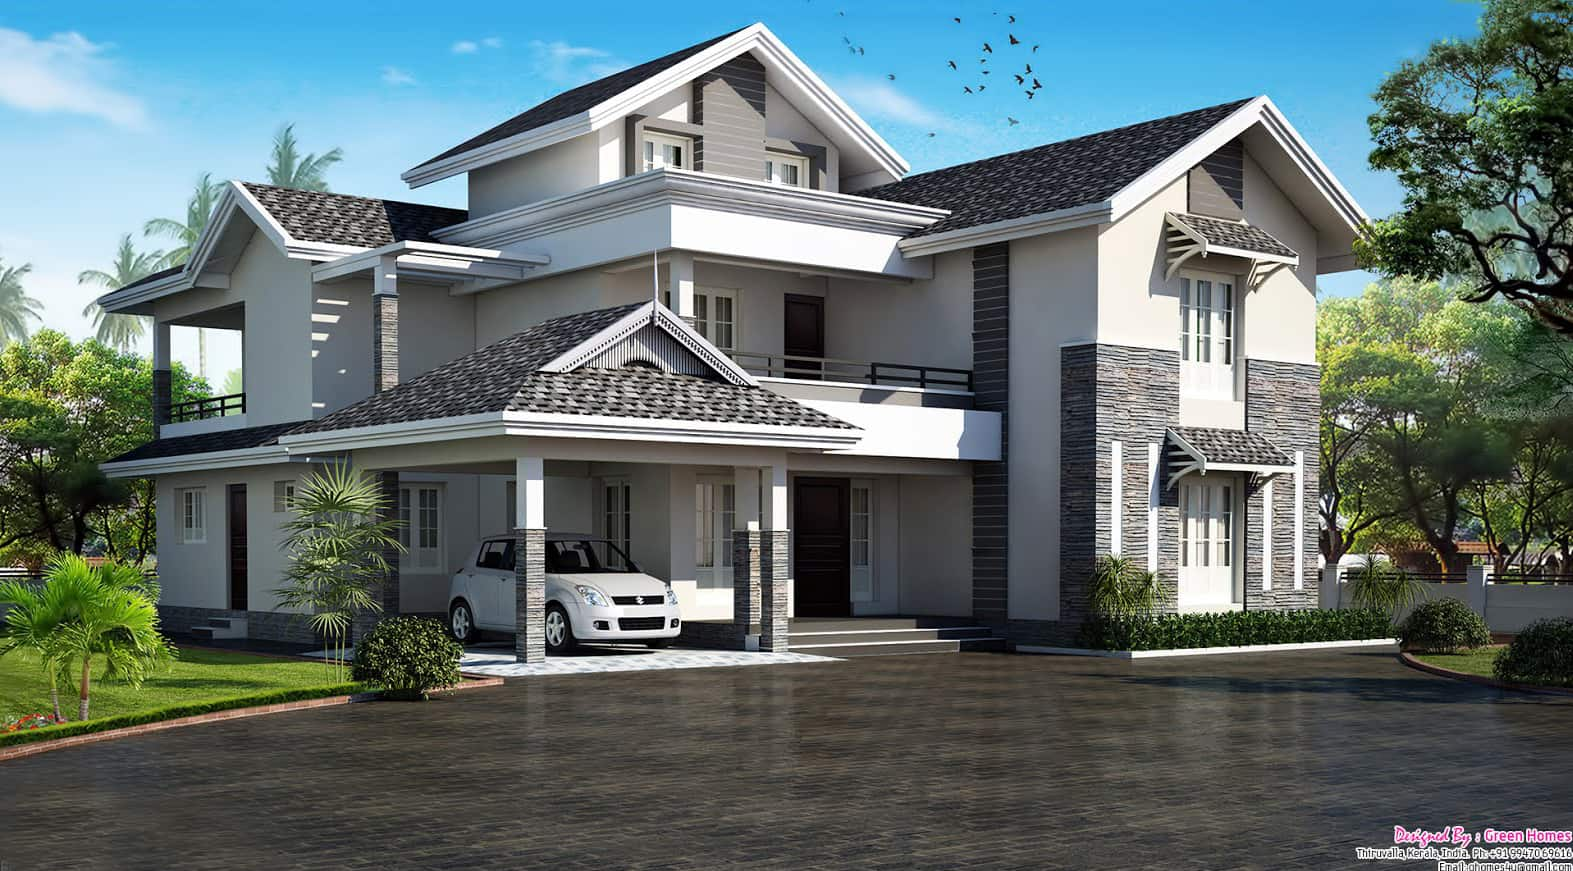 3600 5bhk modern sloping roof kerala villa design Home builders designs